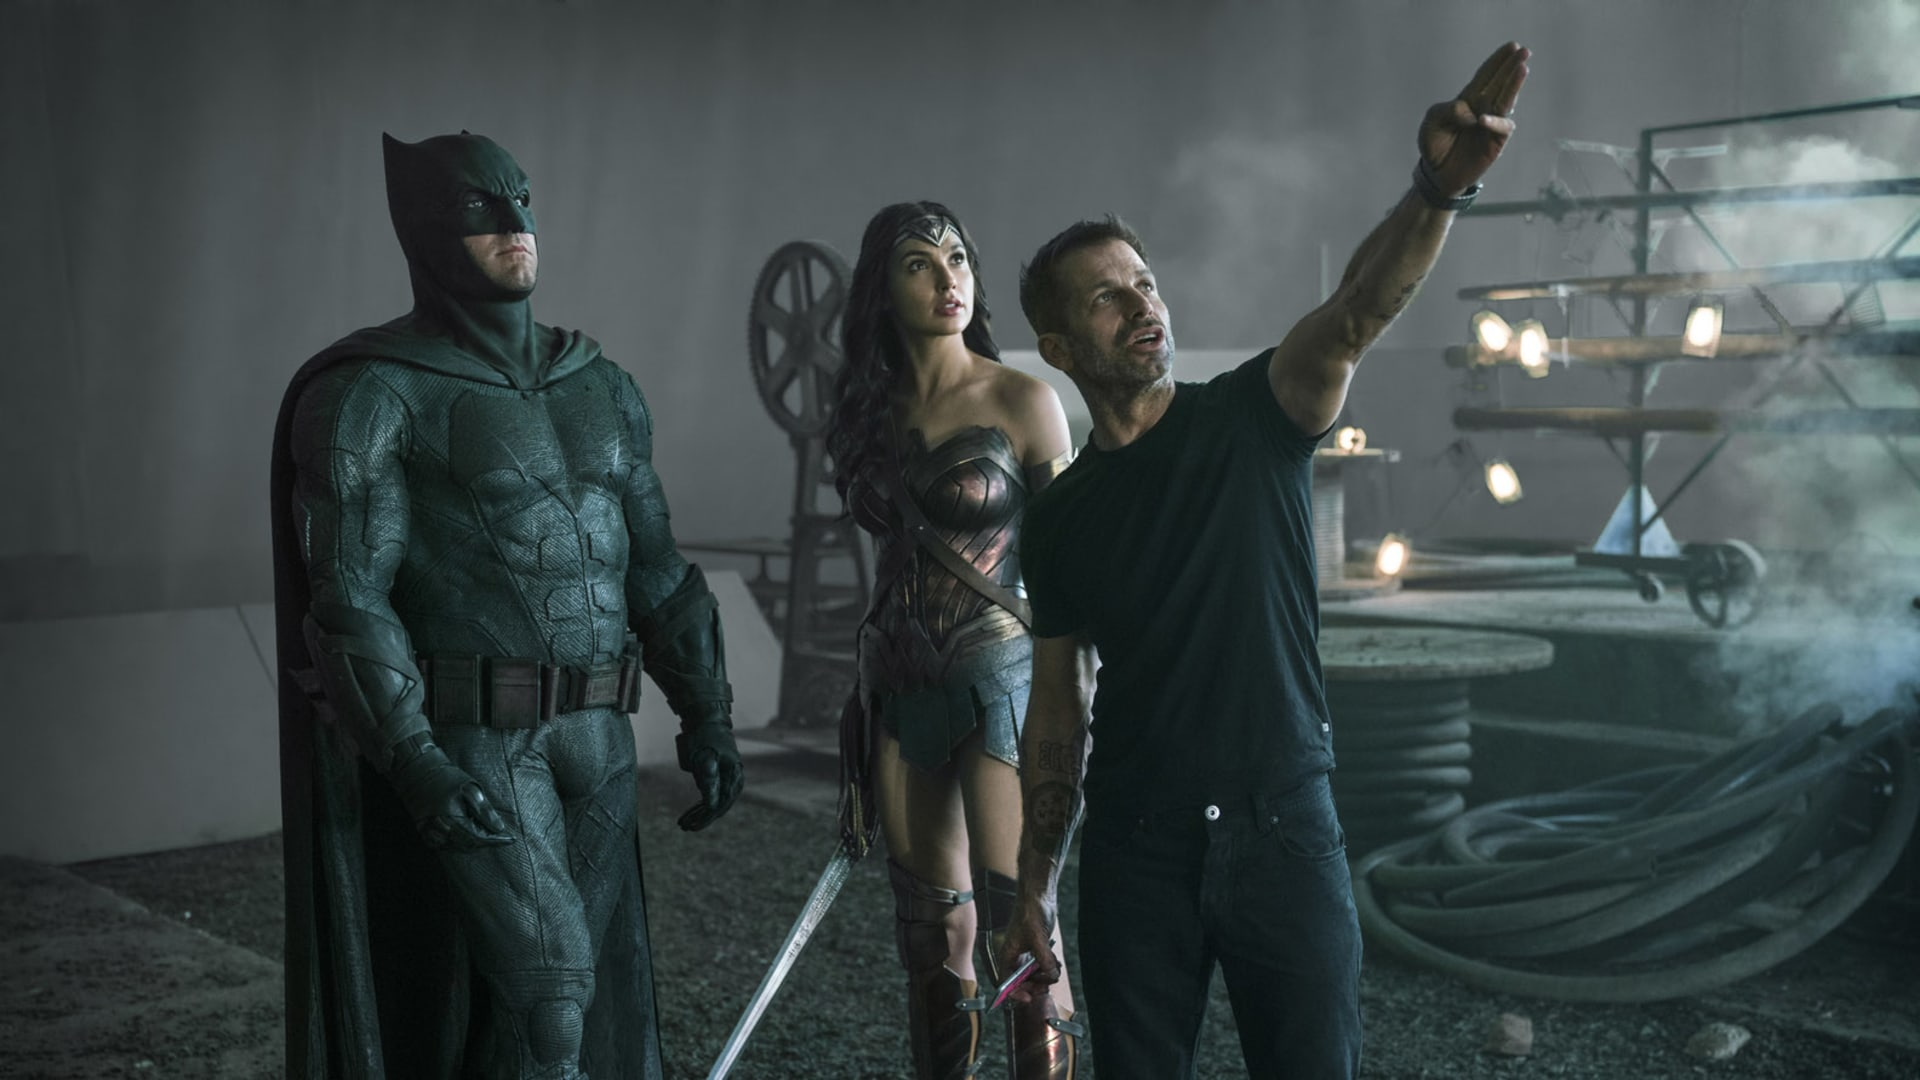 Director Zach Snyder on the set of 'Justice League,' with Ben Affleck and Gal Gadot.